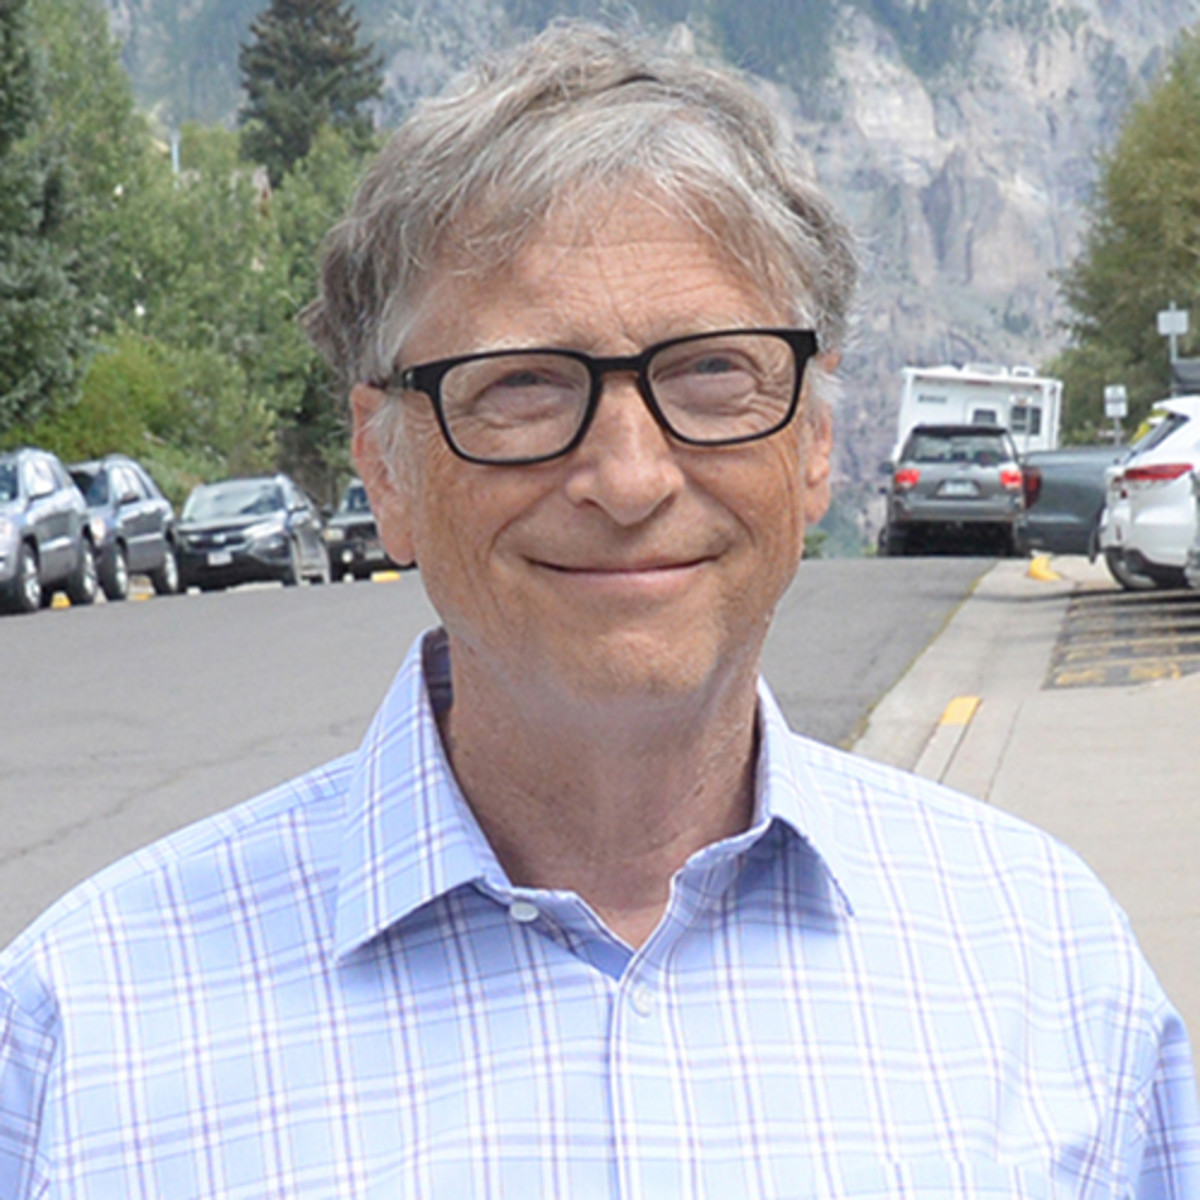 Bill Gates Phone number, Email Id, Fanmail, Instagram, Tiktok, and Contact Details